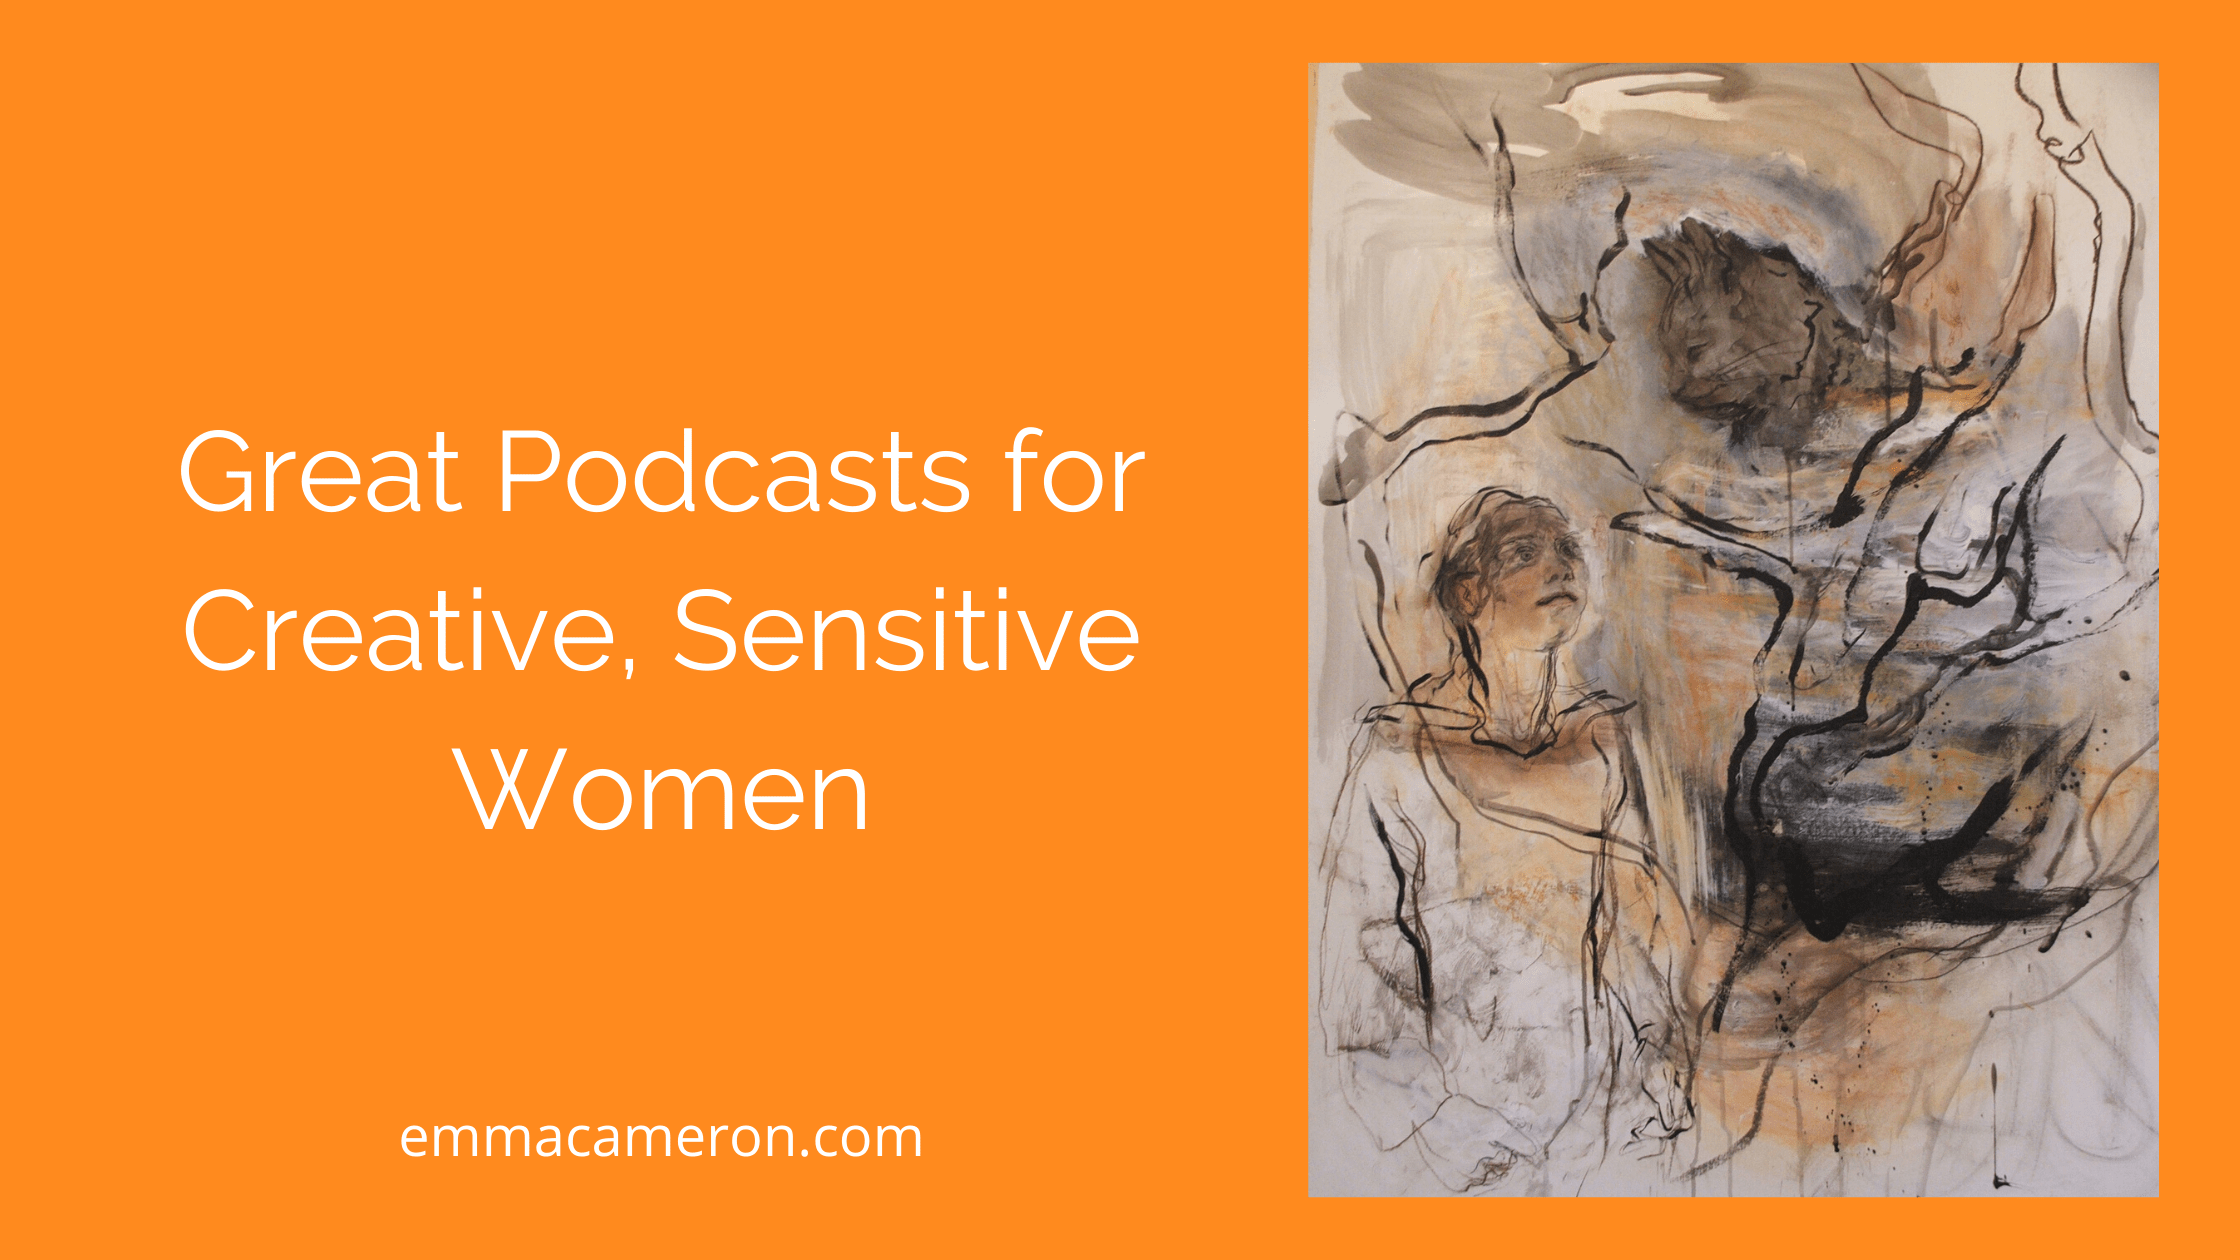 Great Podcasts for Creative Sensitive Women